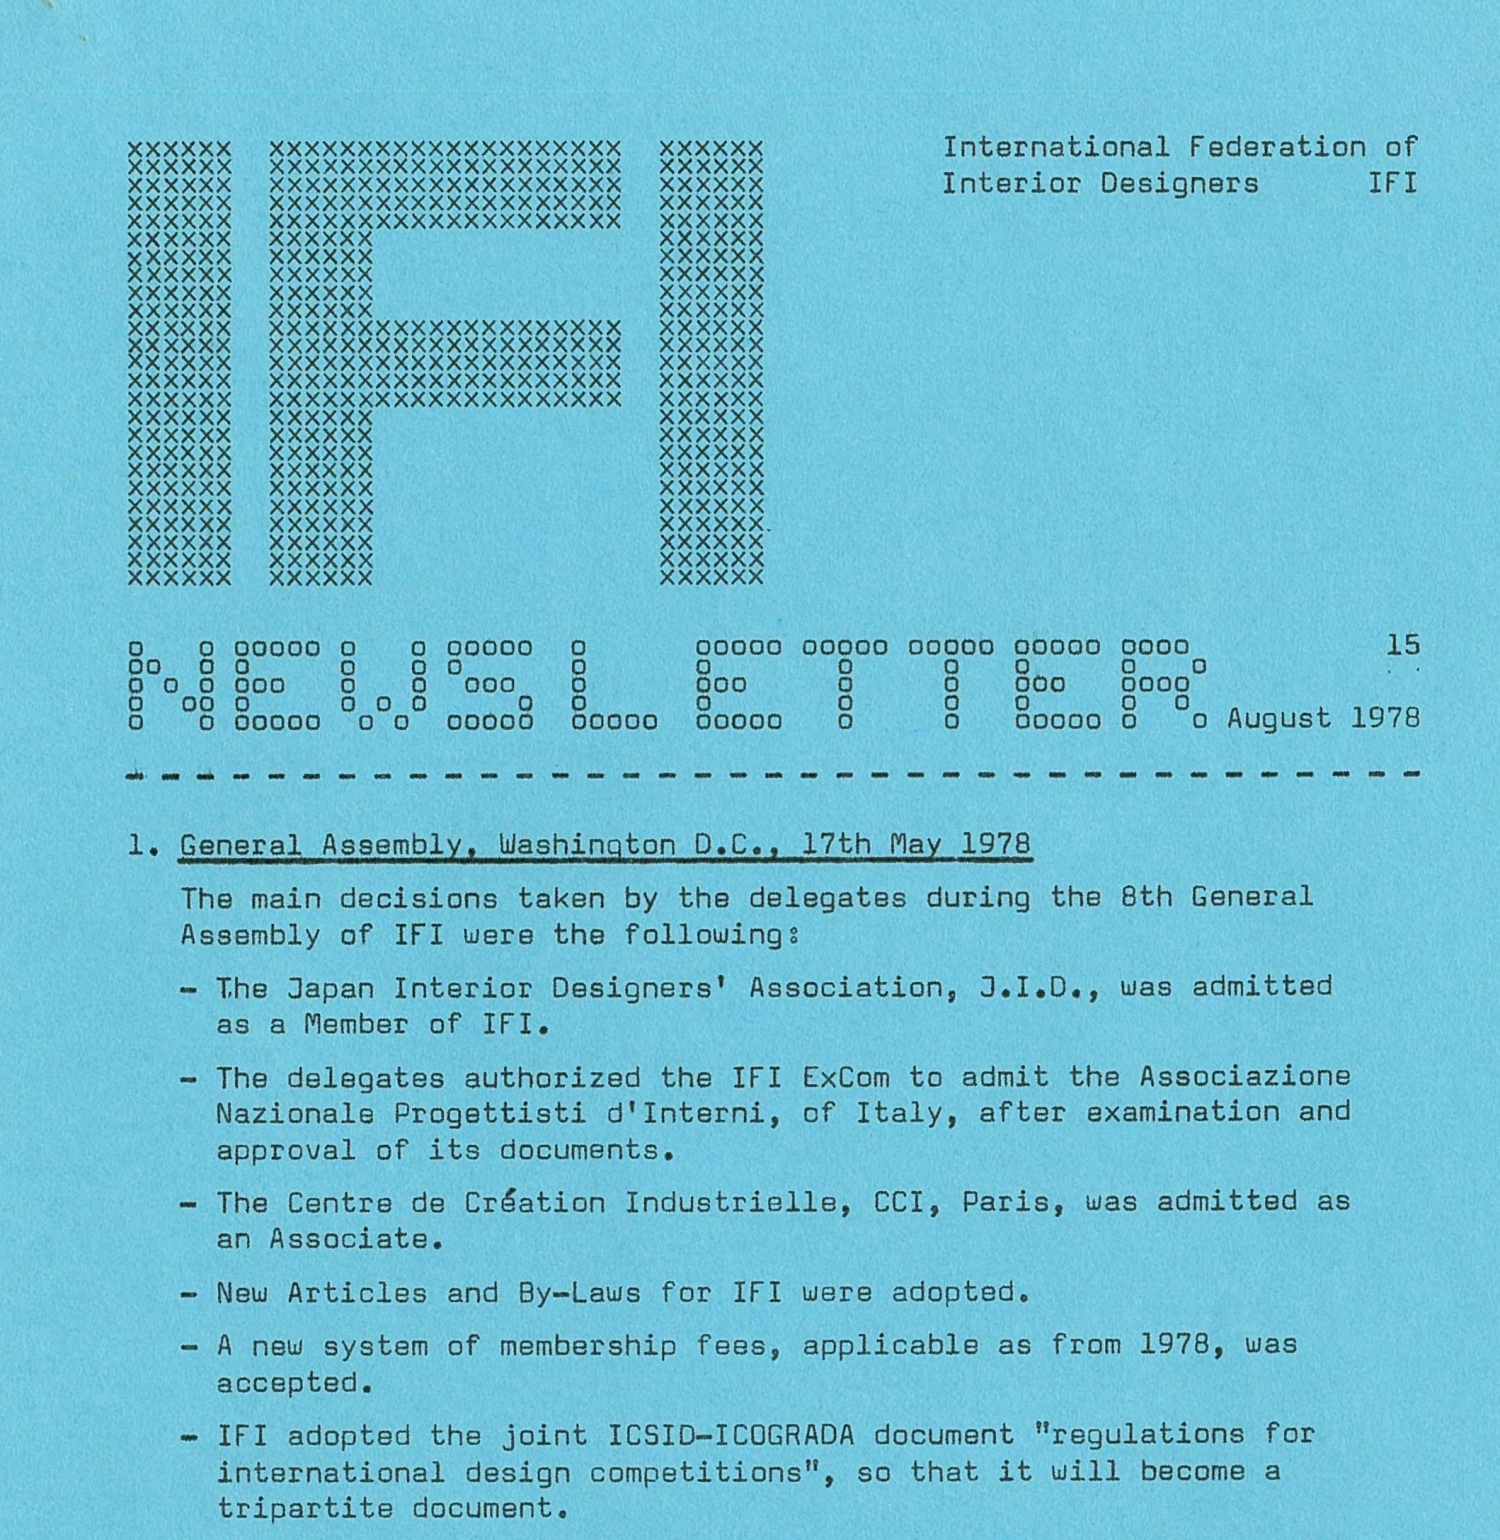 International Federation of Interior Designers newsletter